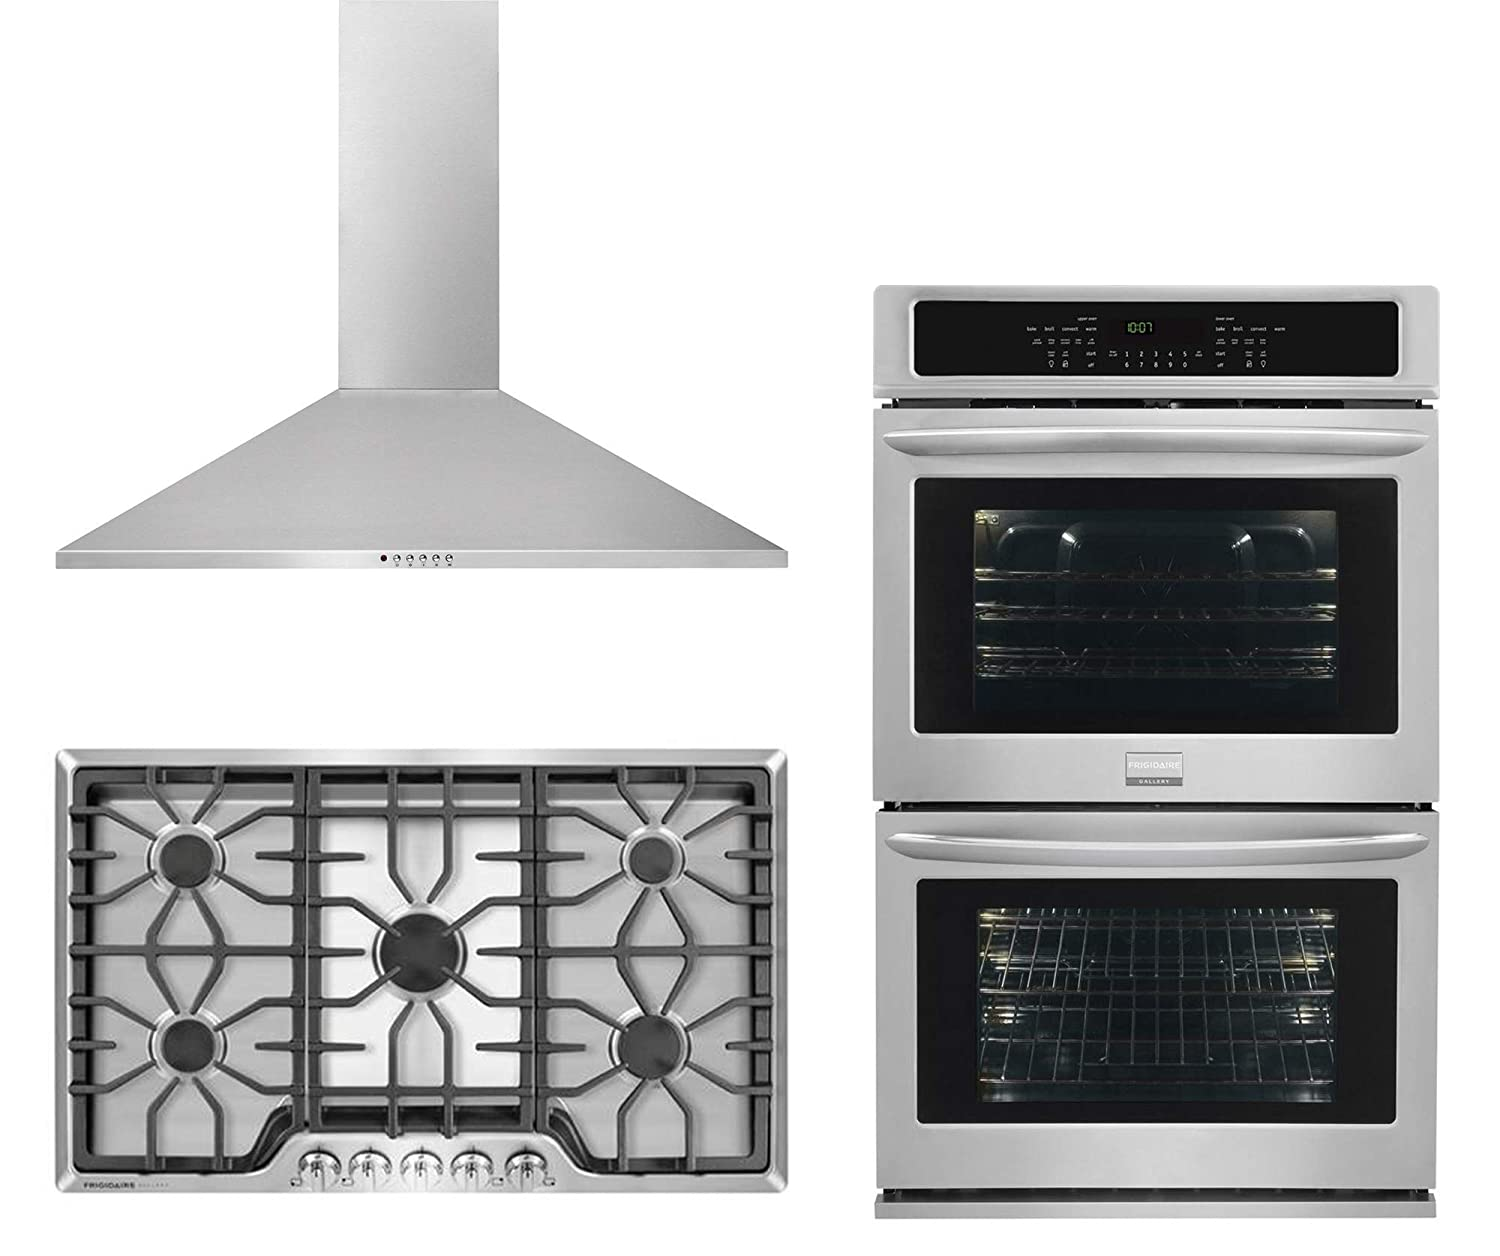 Frigidaire 3-Piece Stainless Steel Kitchen Package with FGGC3645QS 36 Inch Natural Gas Cooktop, FHWC3655LS 36 Inch Wall Mount Convertible Hood, FGET3065PF 30 Inch Electric Double Wall Oven